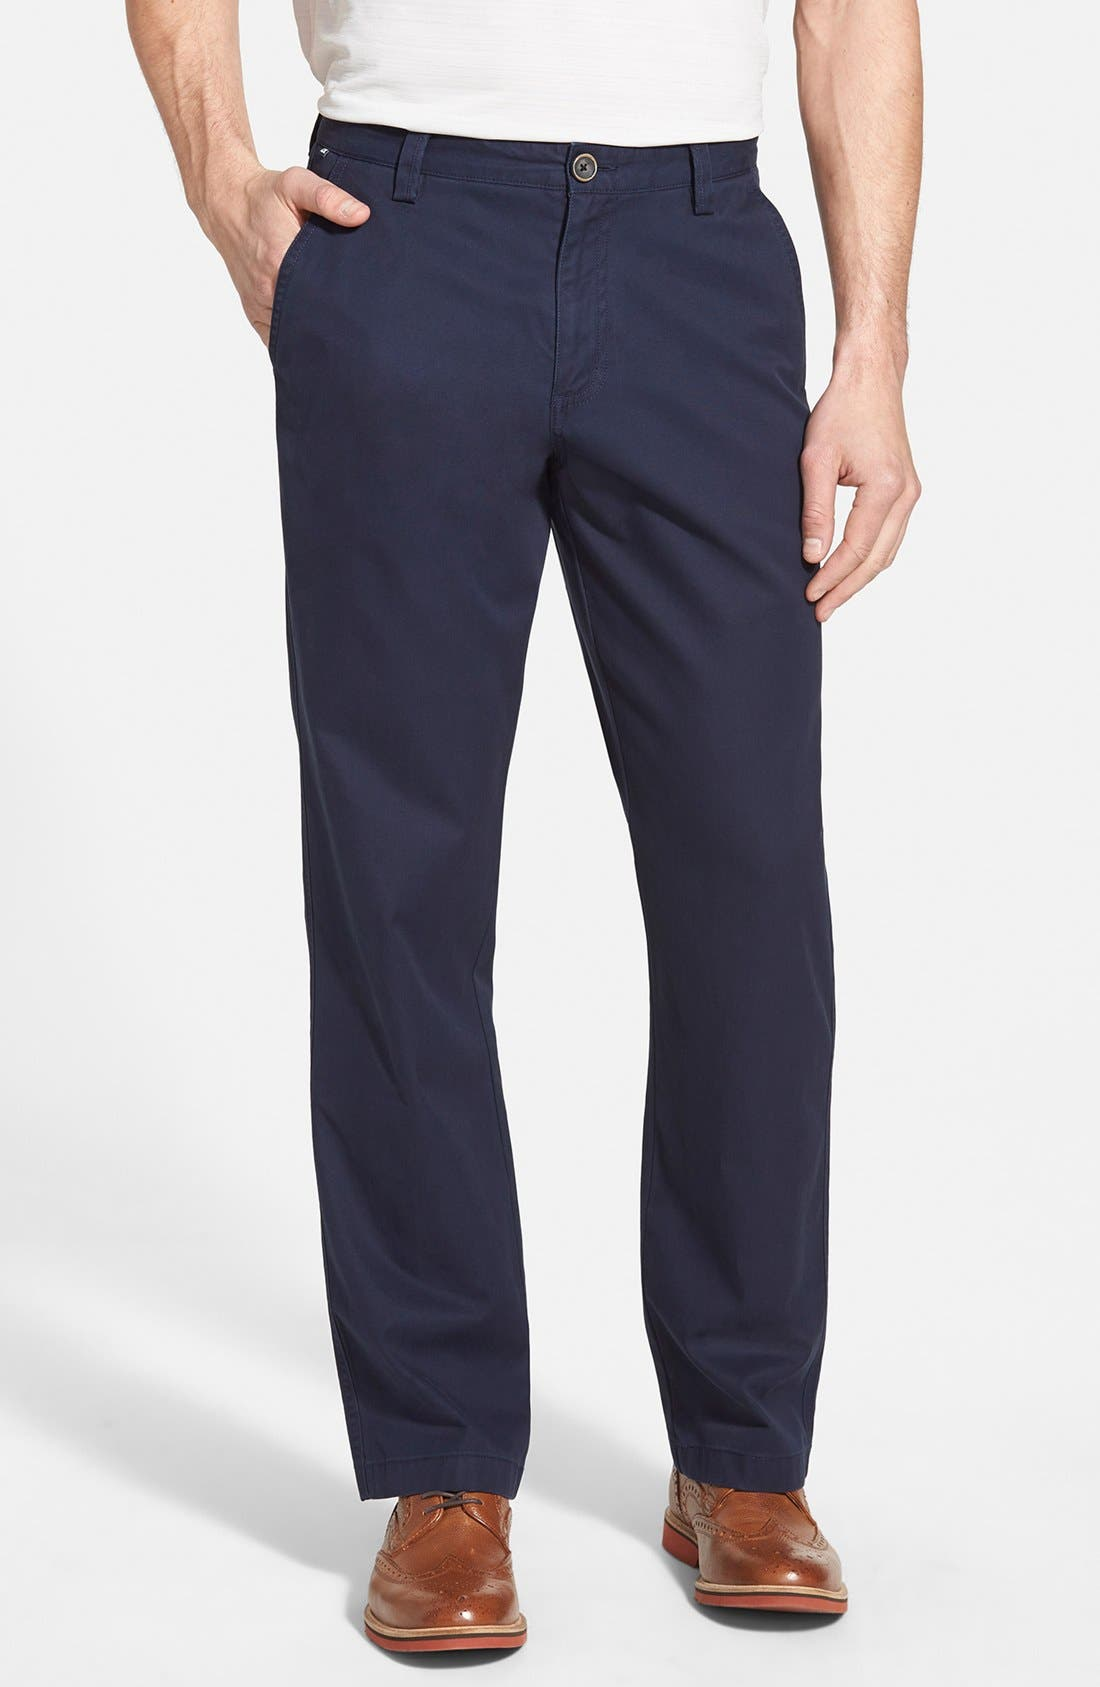 CUTTER & BUCK, Beckett Straight Leg Washed Cotton Pants, Main thumbnail 1, color, LIBERTY NAVY